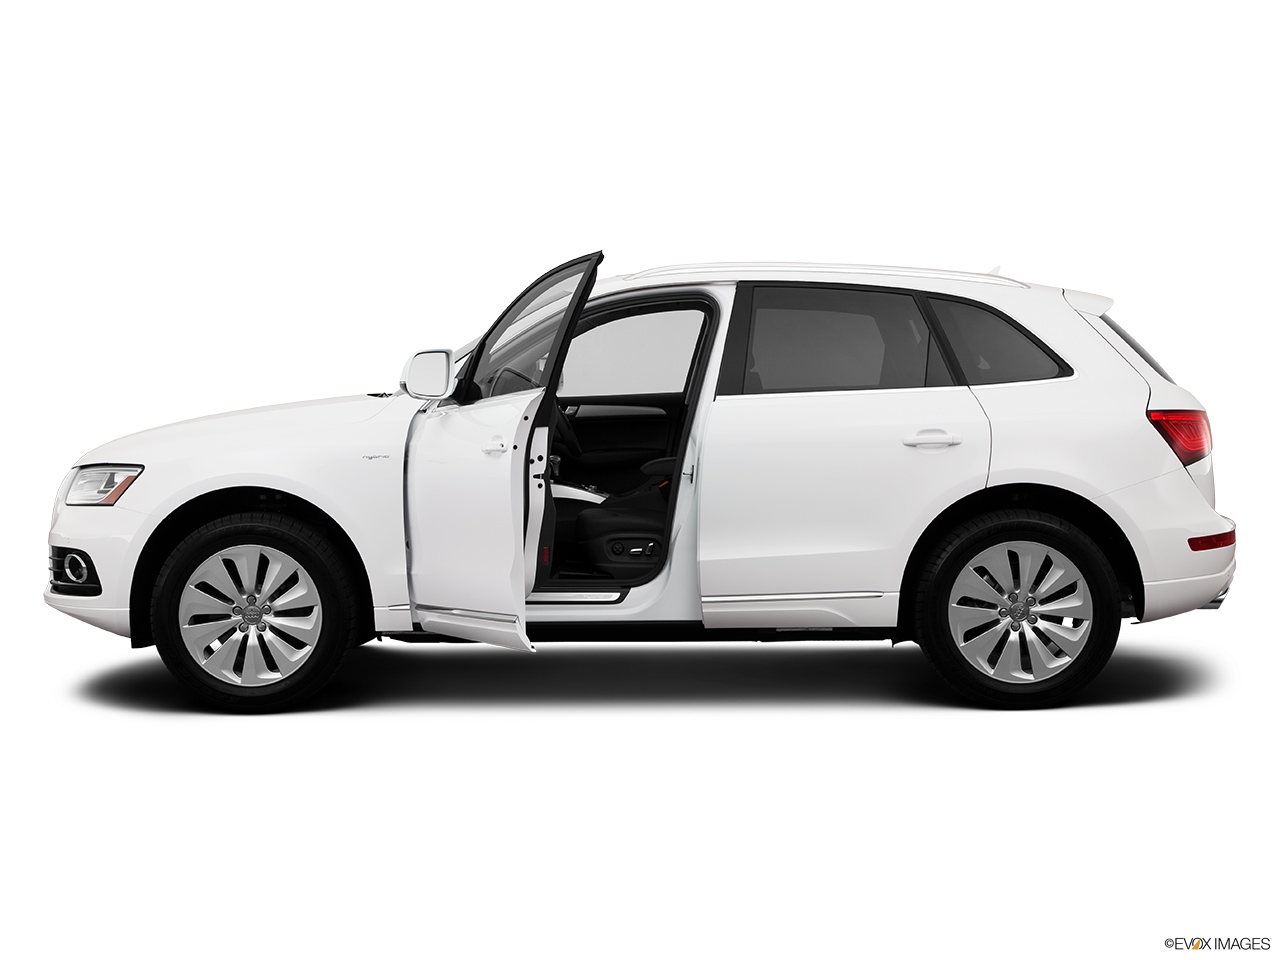 2014 Audi Q5 Hybrid 2.0 TFSI Prestige Driver's side profile with drivers side door open.